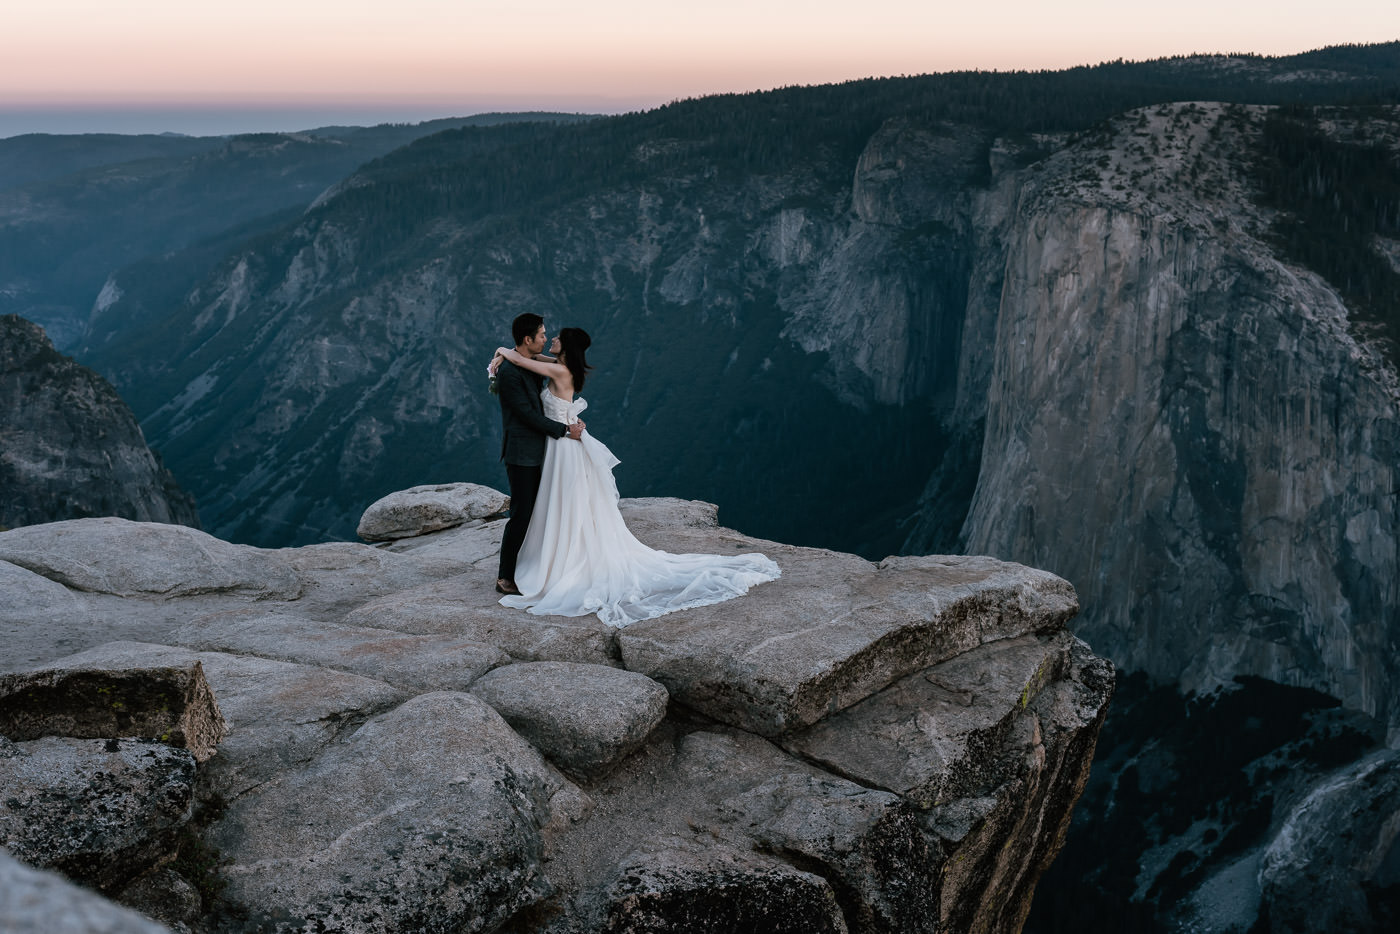 Couple elopes to Yosemite for a sunrise marriage ceremony.